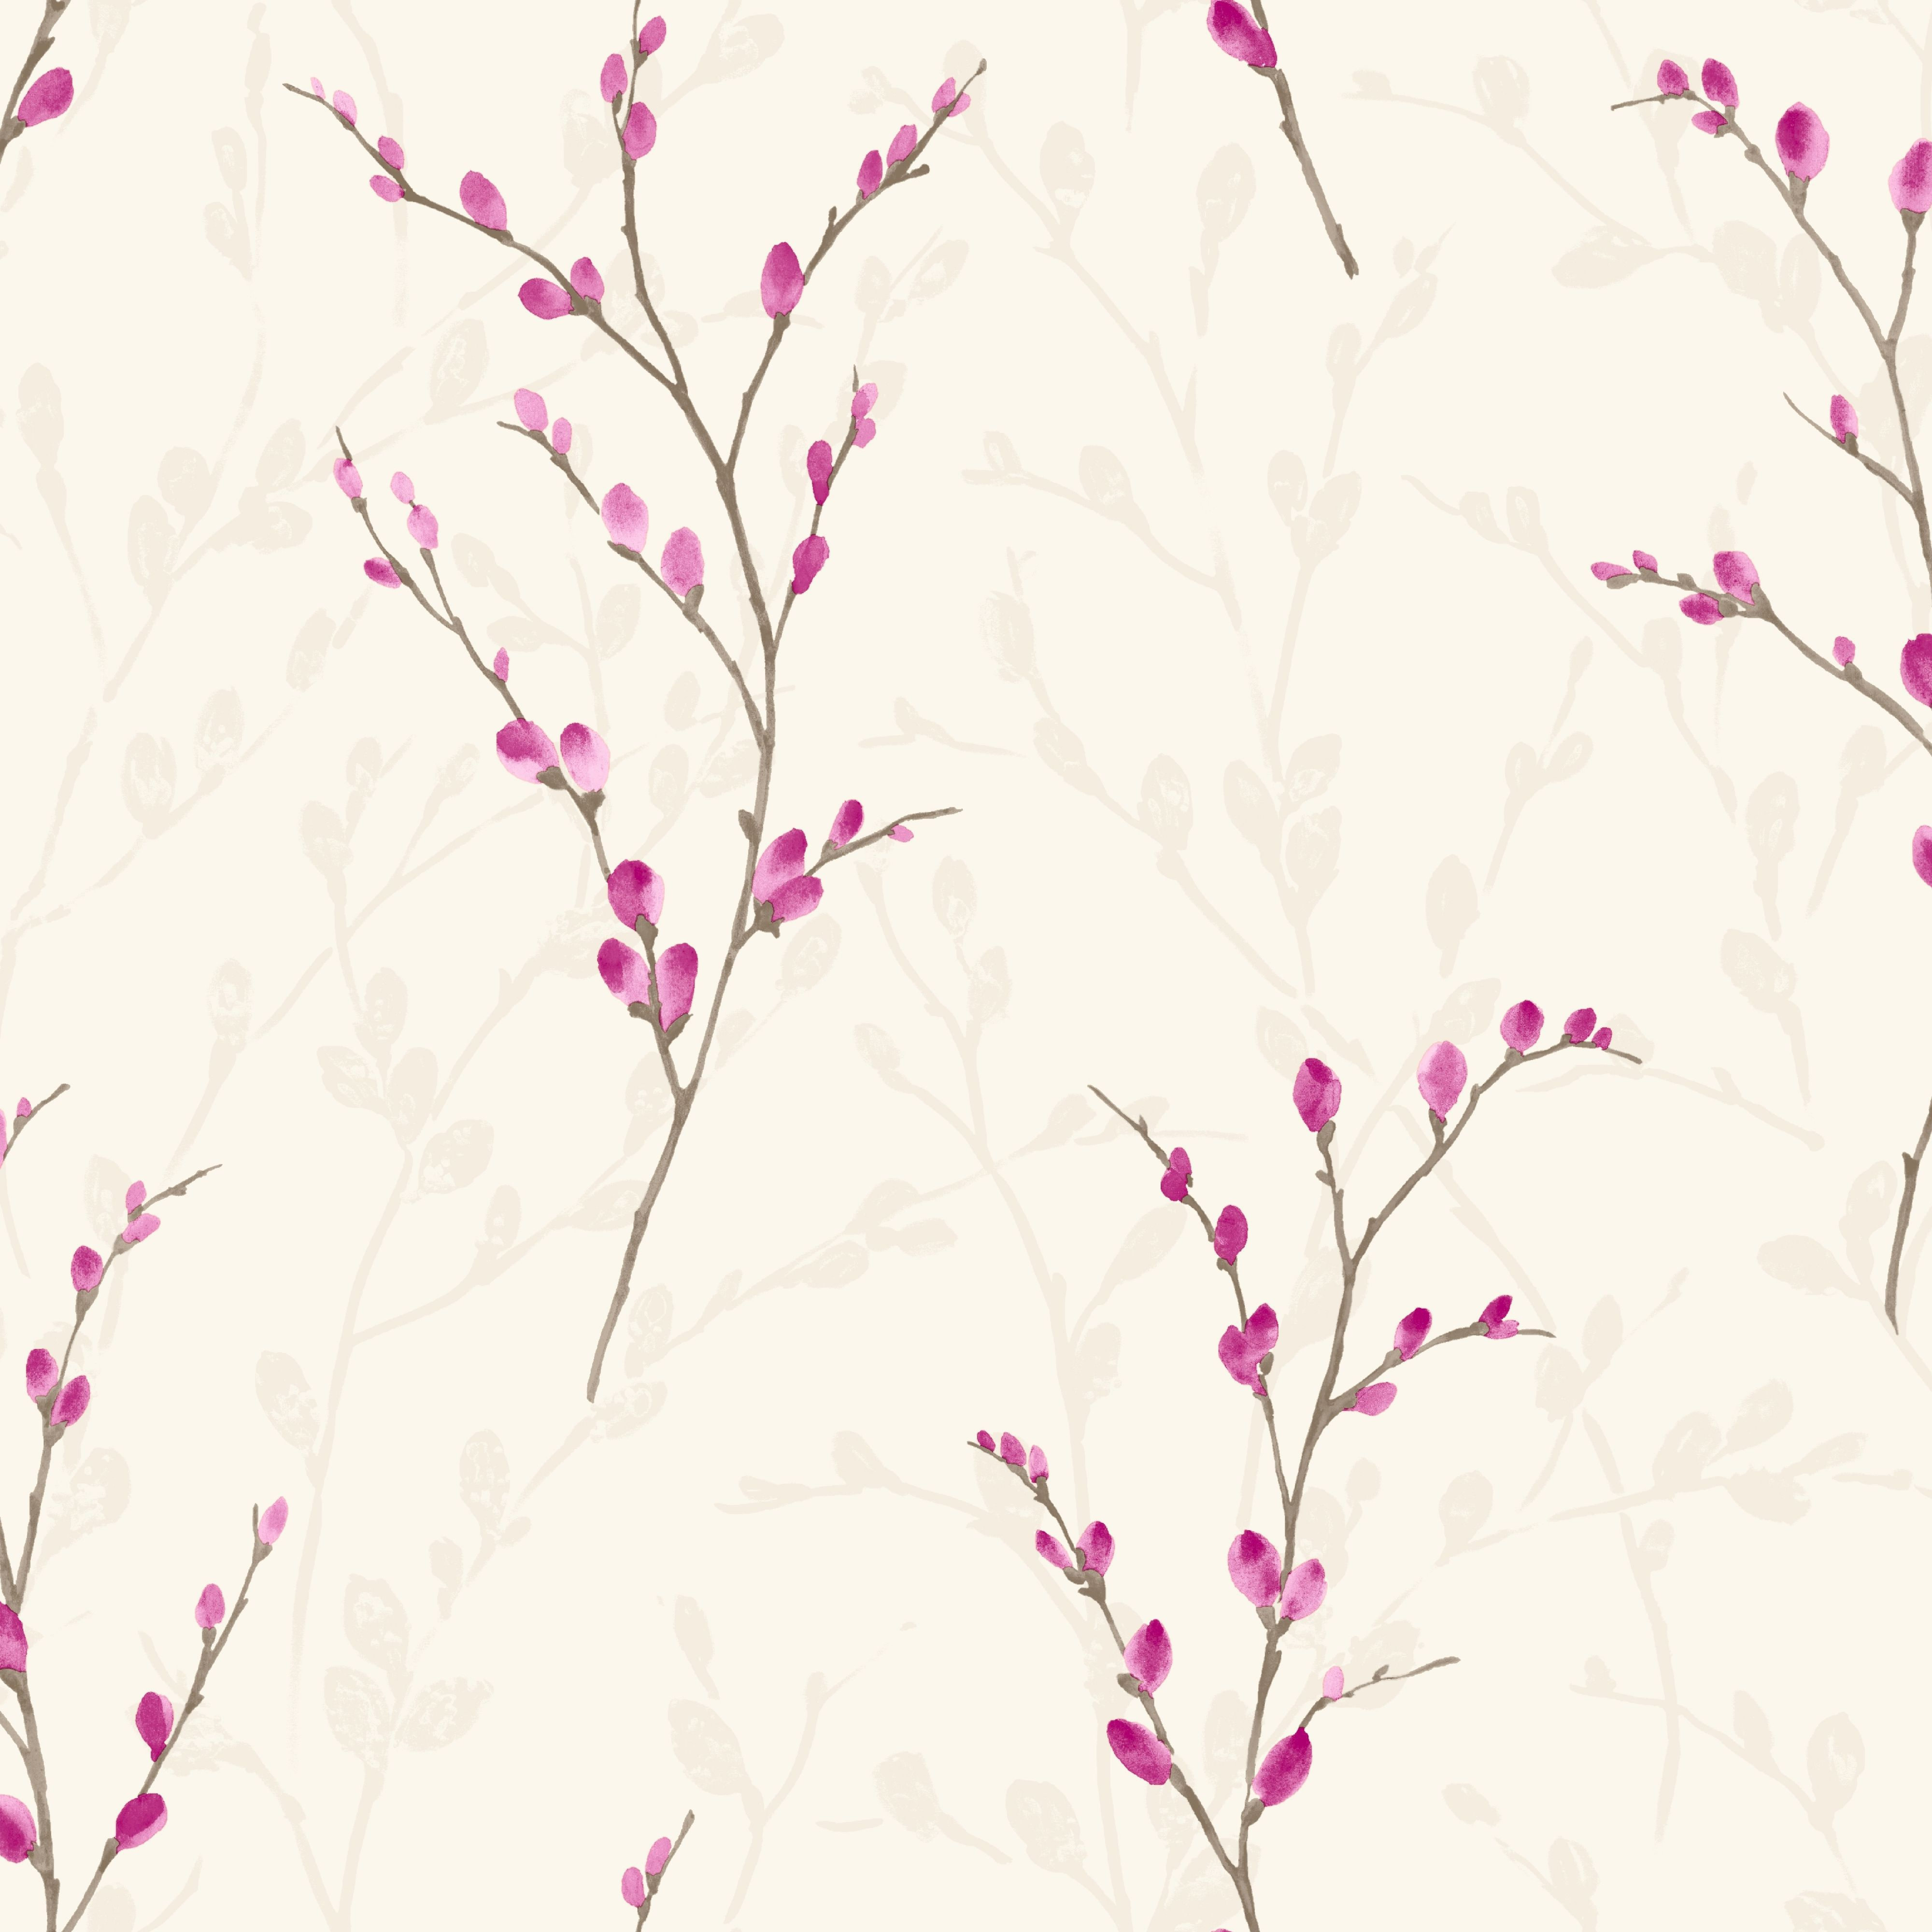 ashley furniture kitchen chairs americana decor arthouse eco willow plum blossom wallpaper | departments ...